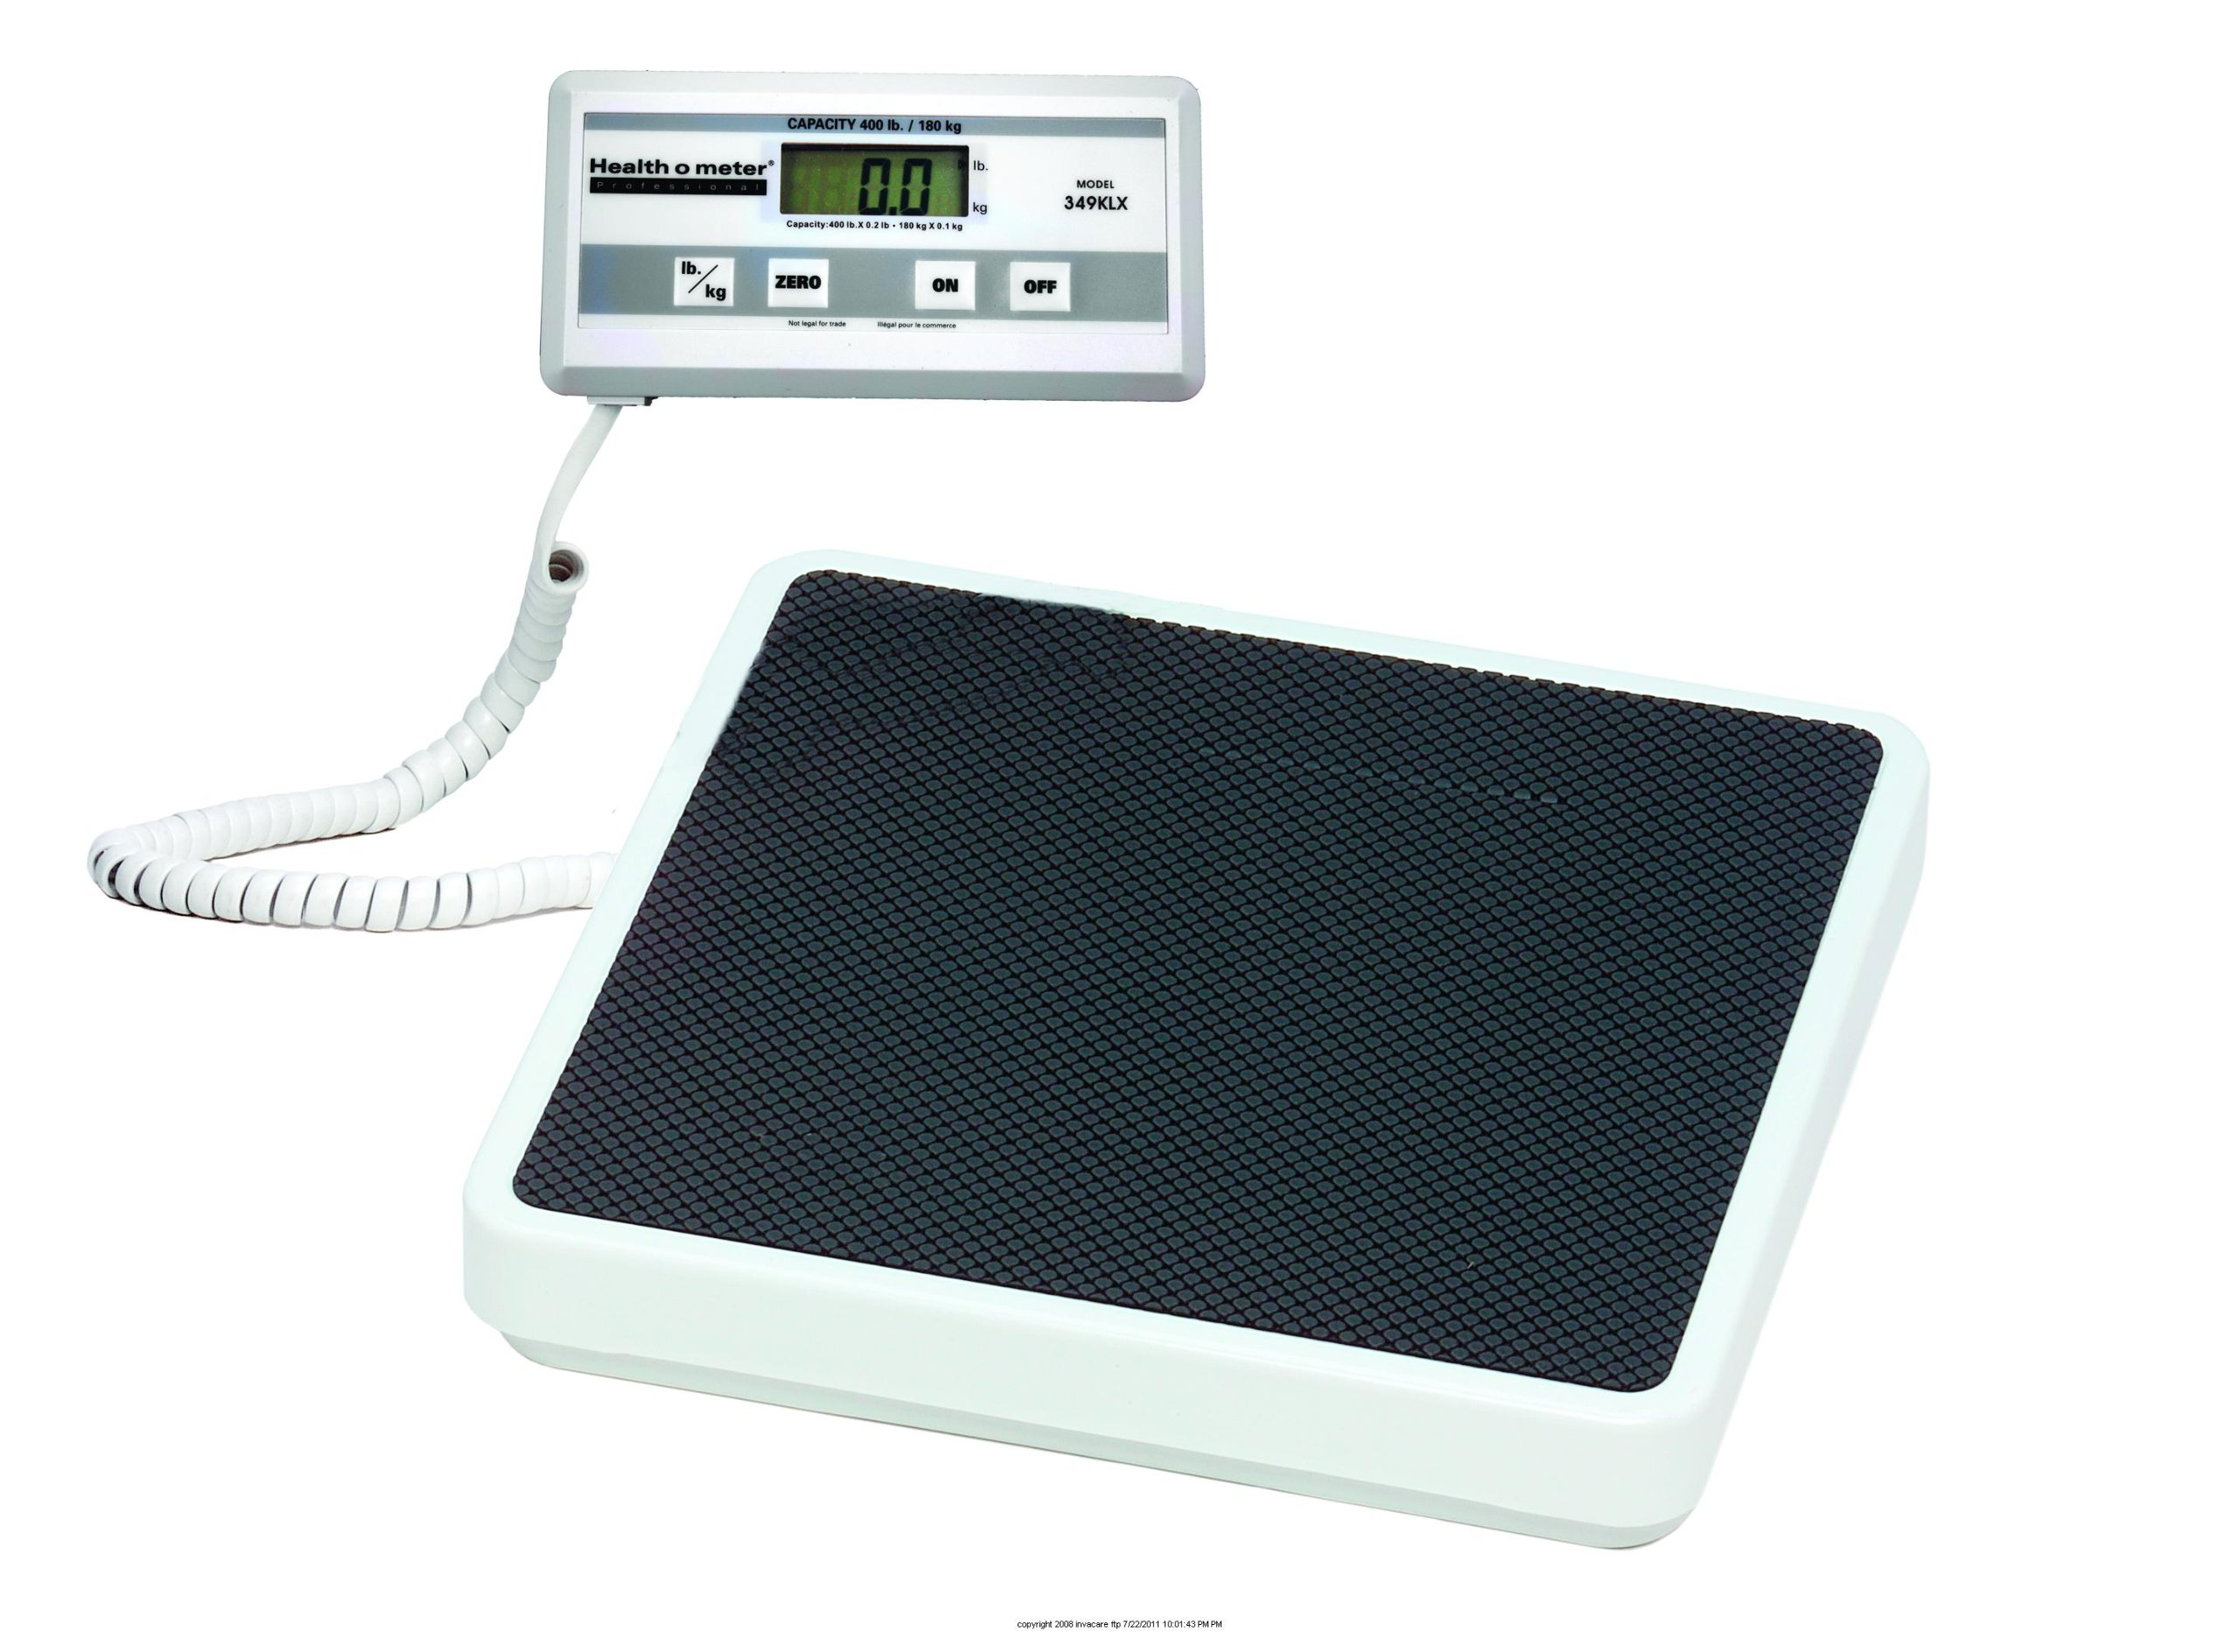 Health o meter Digital 2-Piece Platform Scale with Remote Display-(1 EACH) by Pelstar (Image #1)